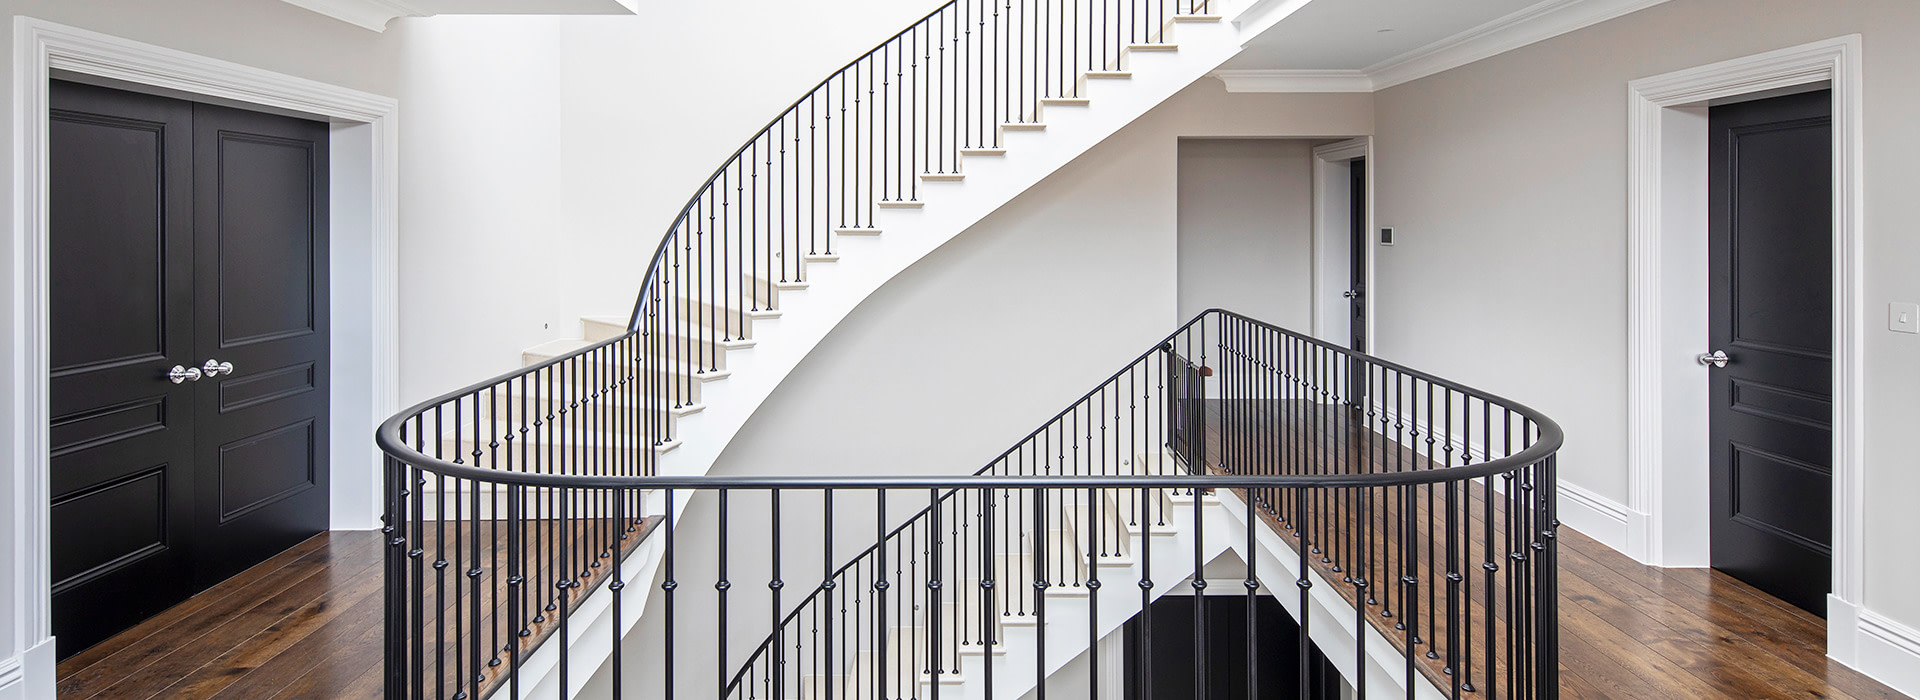 Wrought iron staircase with jet black interior doors